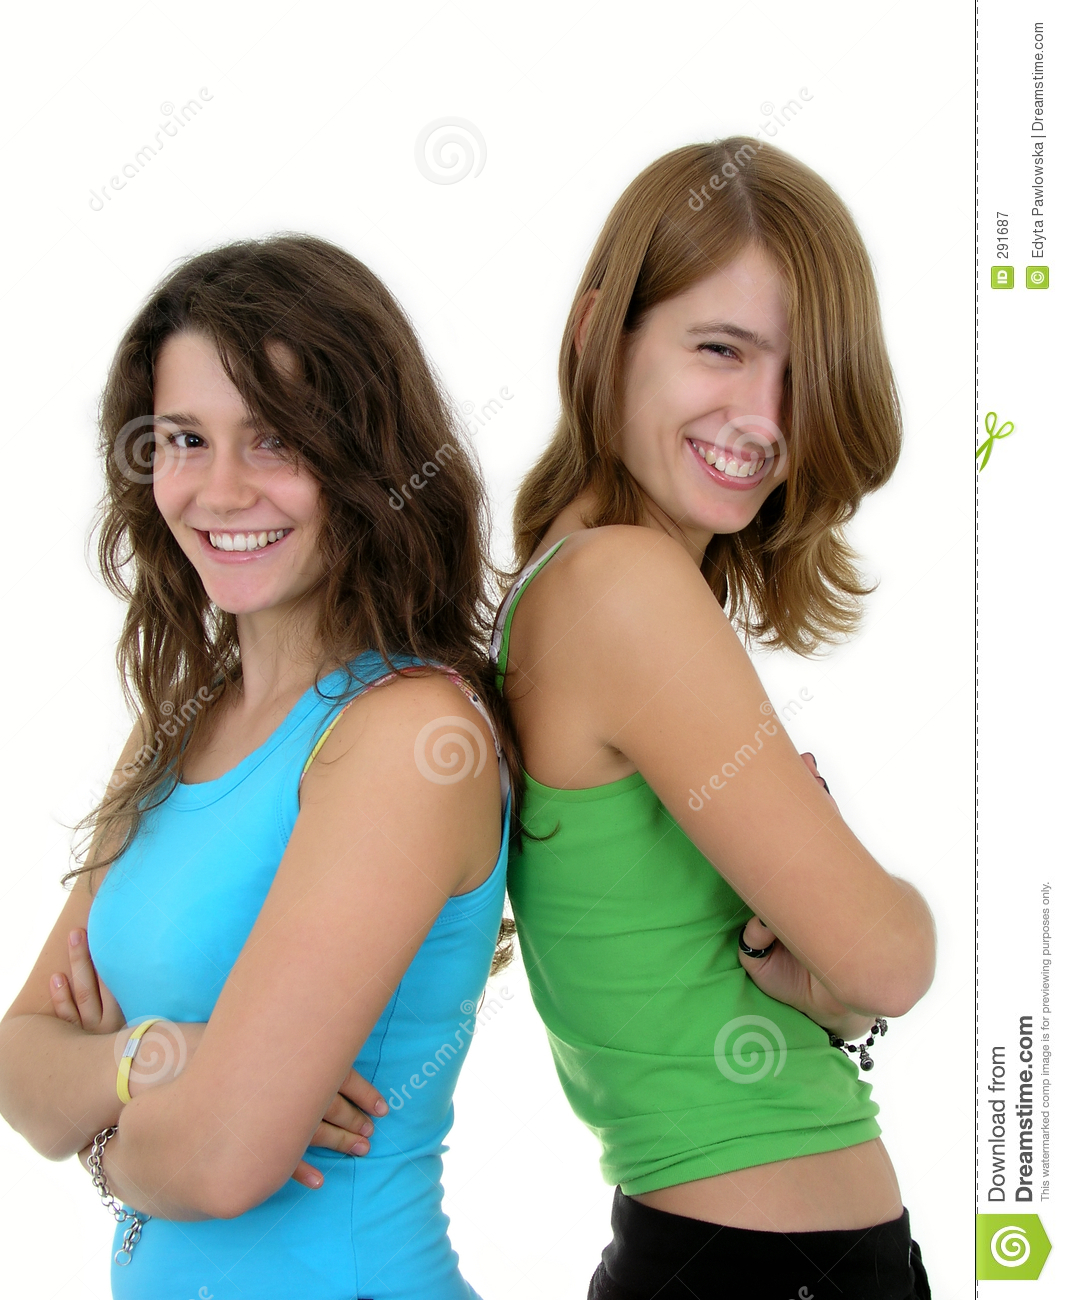 Two young women smiling